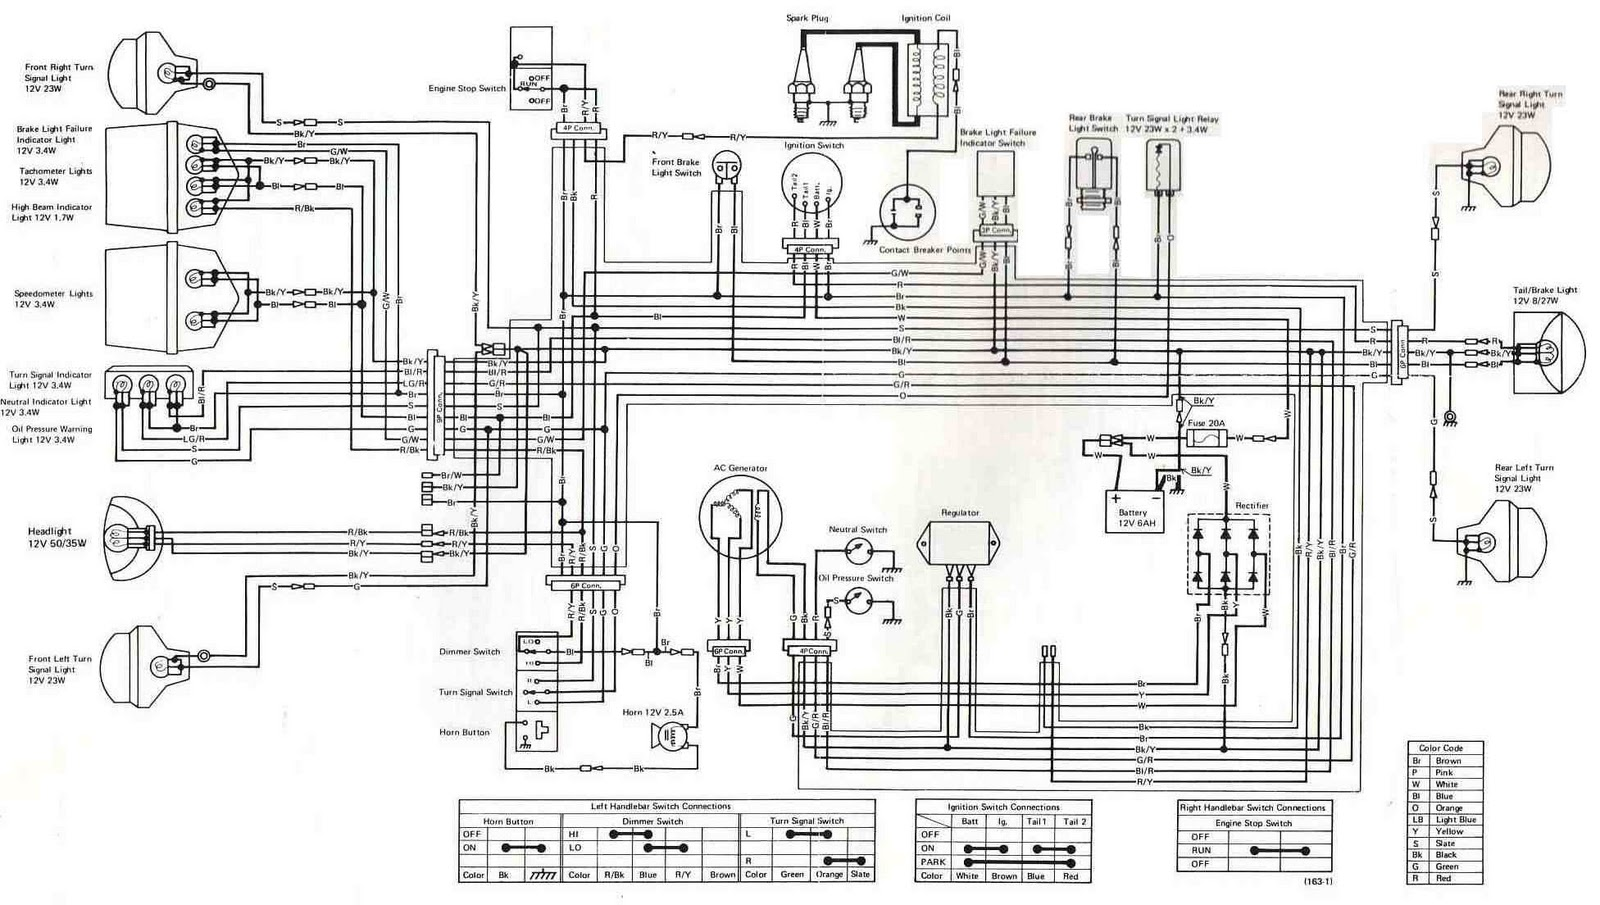 2001 Zx7r Wiring Diagram | Index listing of wiring diagrams  Zx R Wiring Diagram on 2006 manco intruder ii wire diagram, full of a honda shadow 750 wire diagram, zx7r carburetor, 1.8t cooling diagram, 2000 750 ninja diagram,